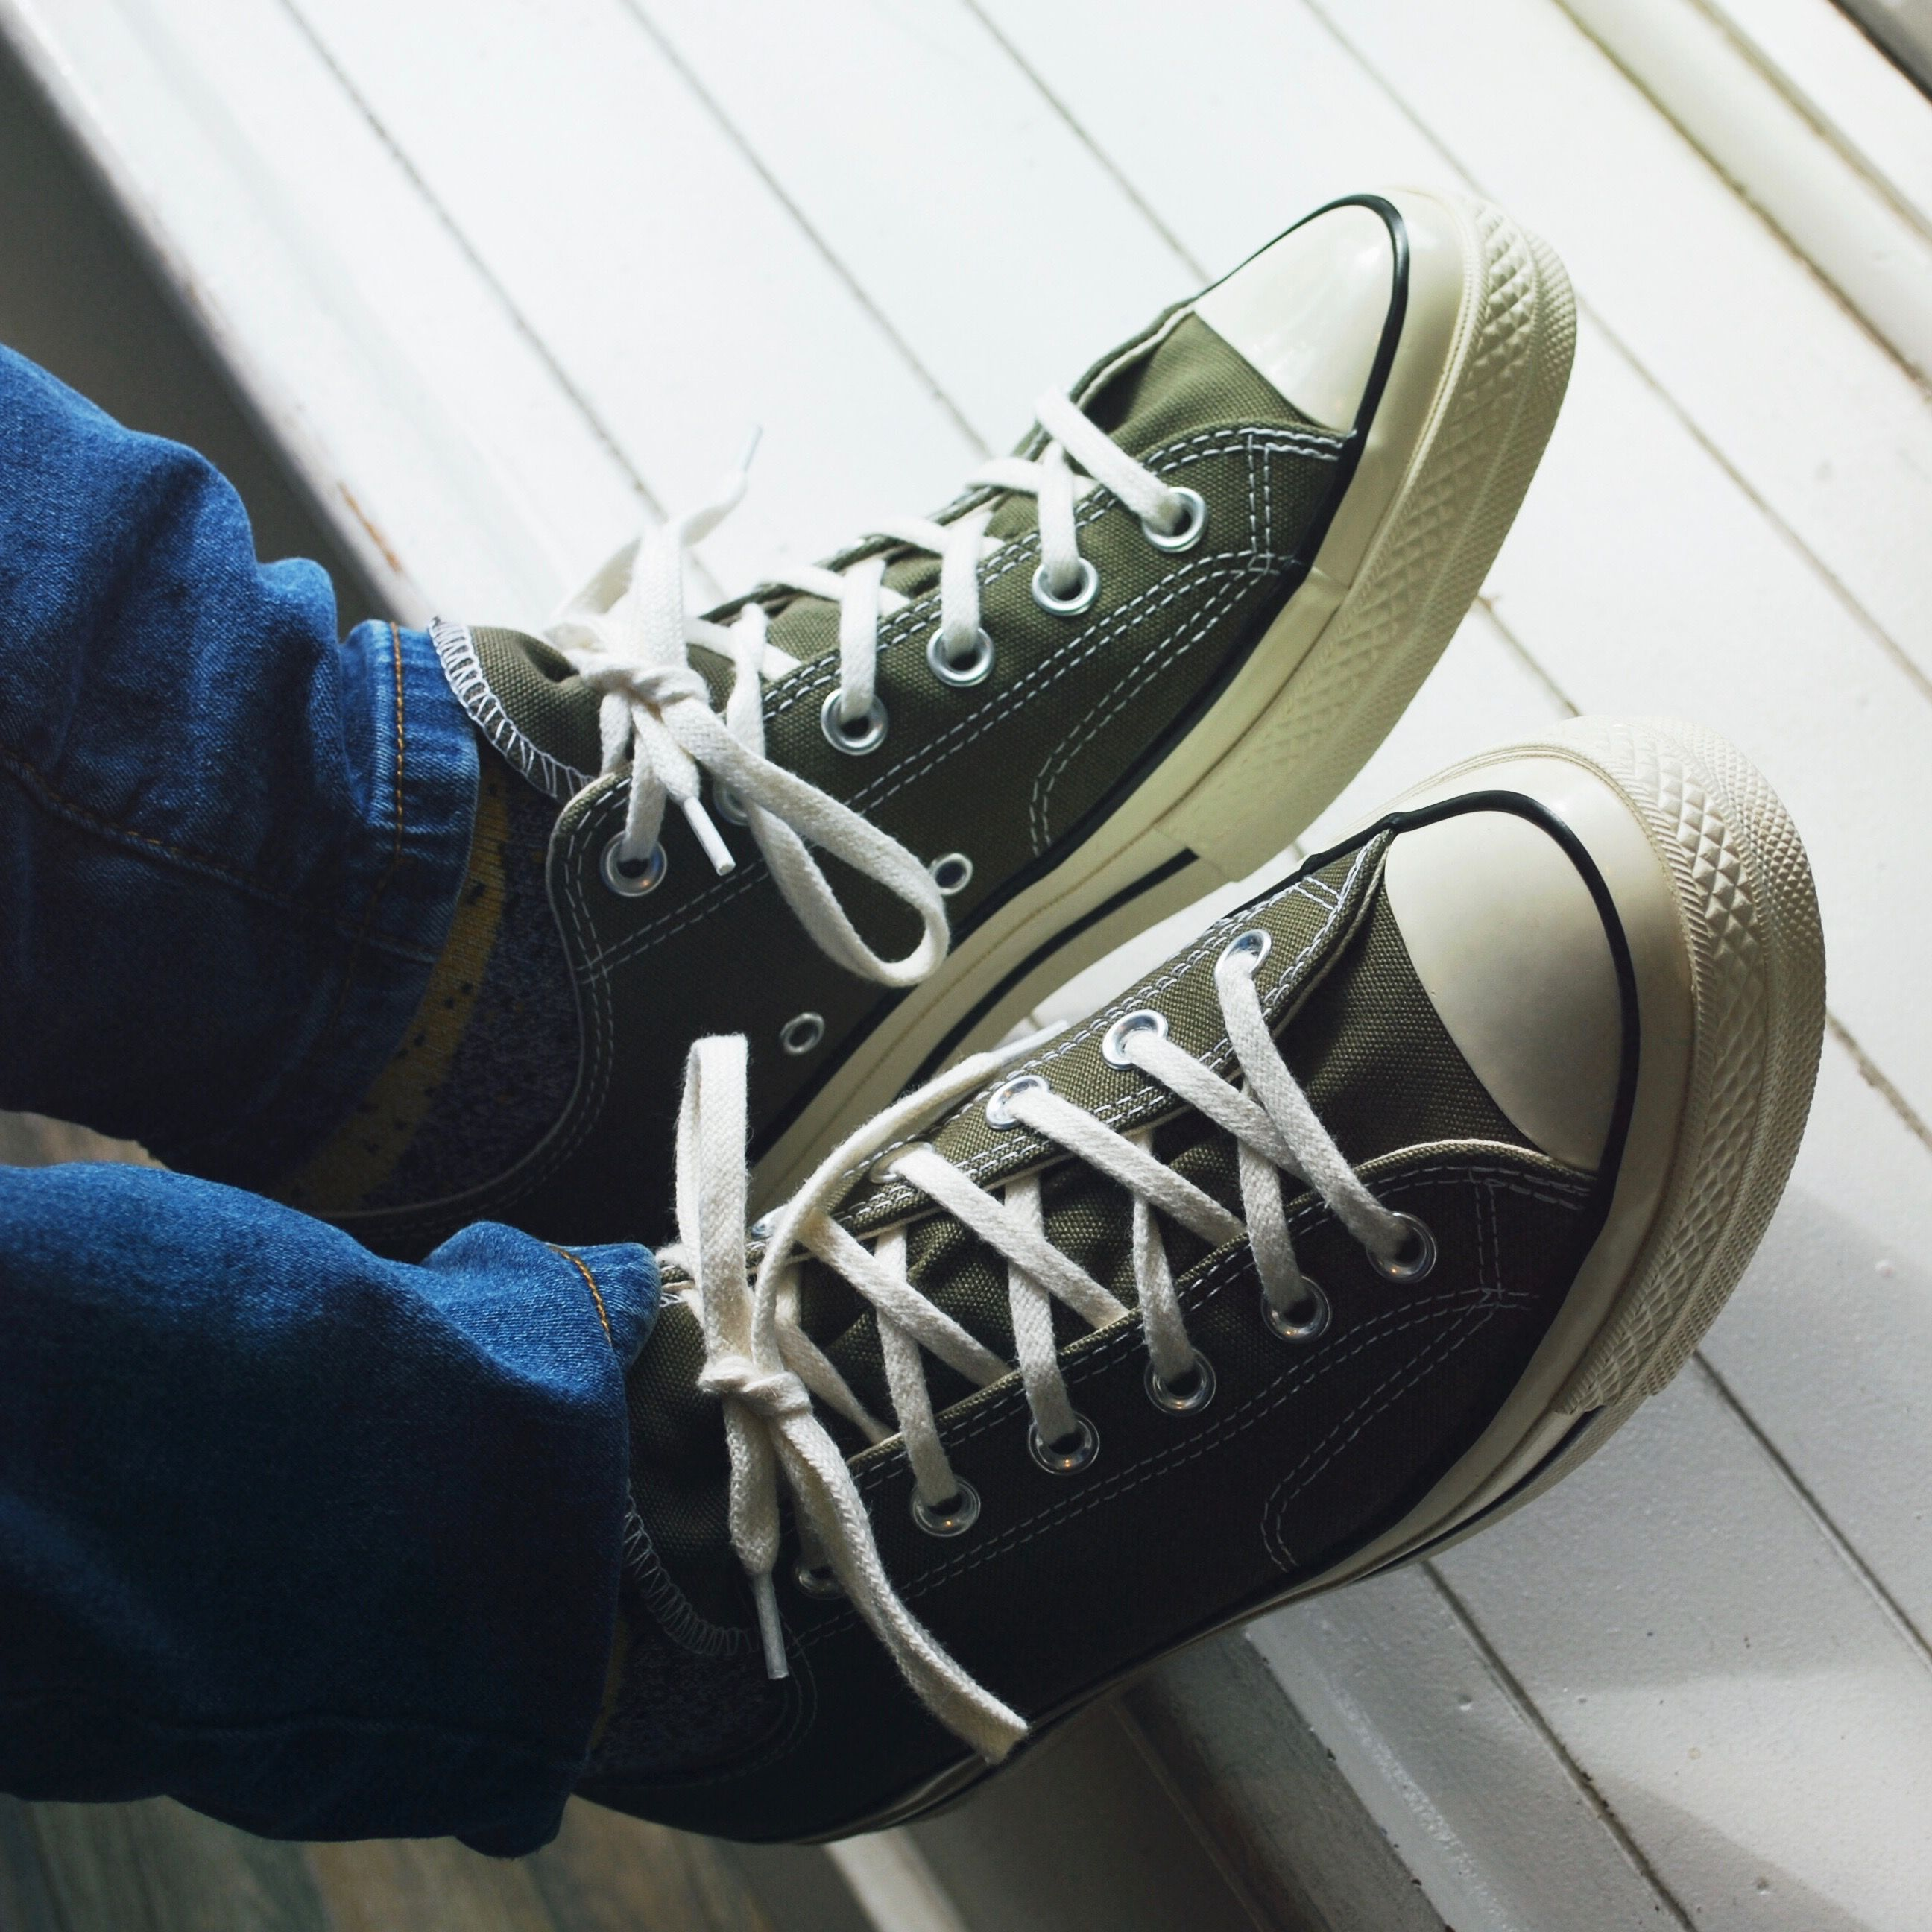 1681f0628 The Converse Chuck Taylor All Star 70 s Low-Tops in Field Surplus are a new  take on the classic